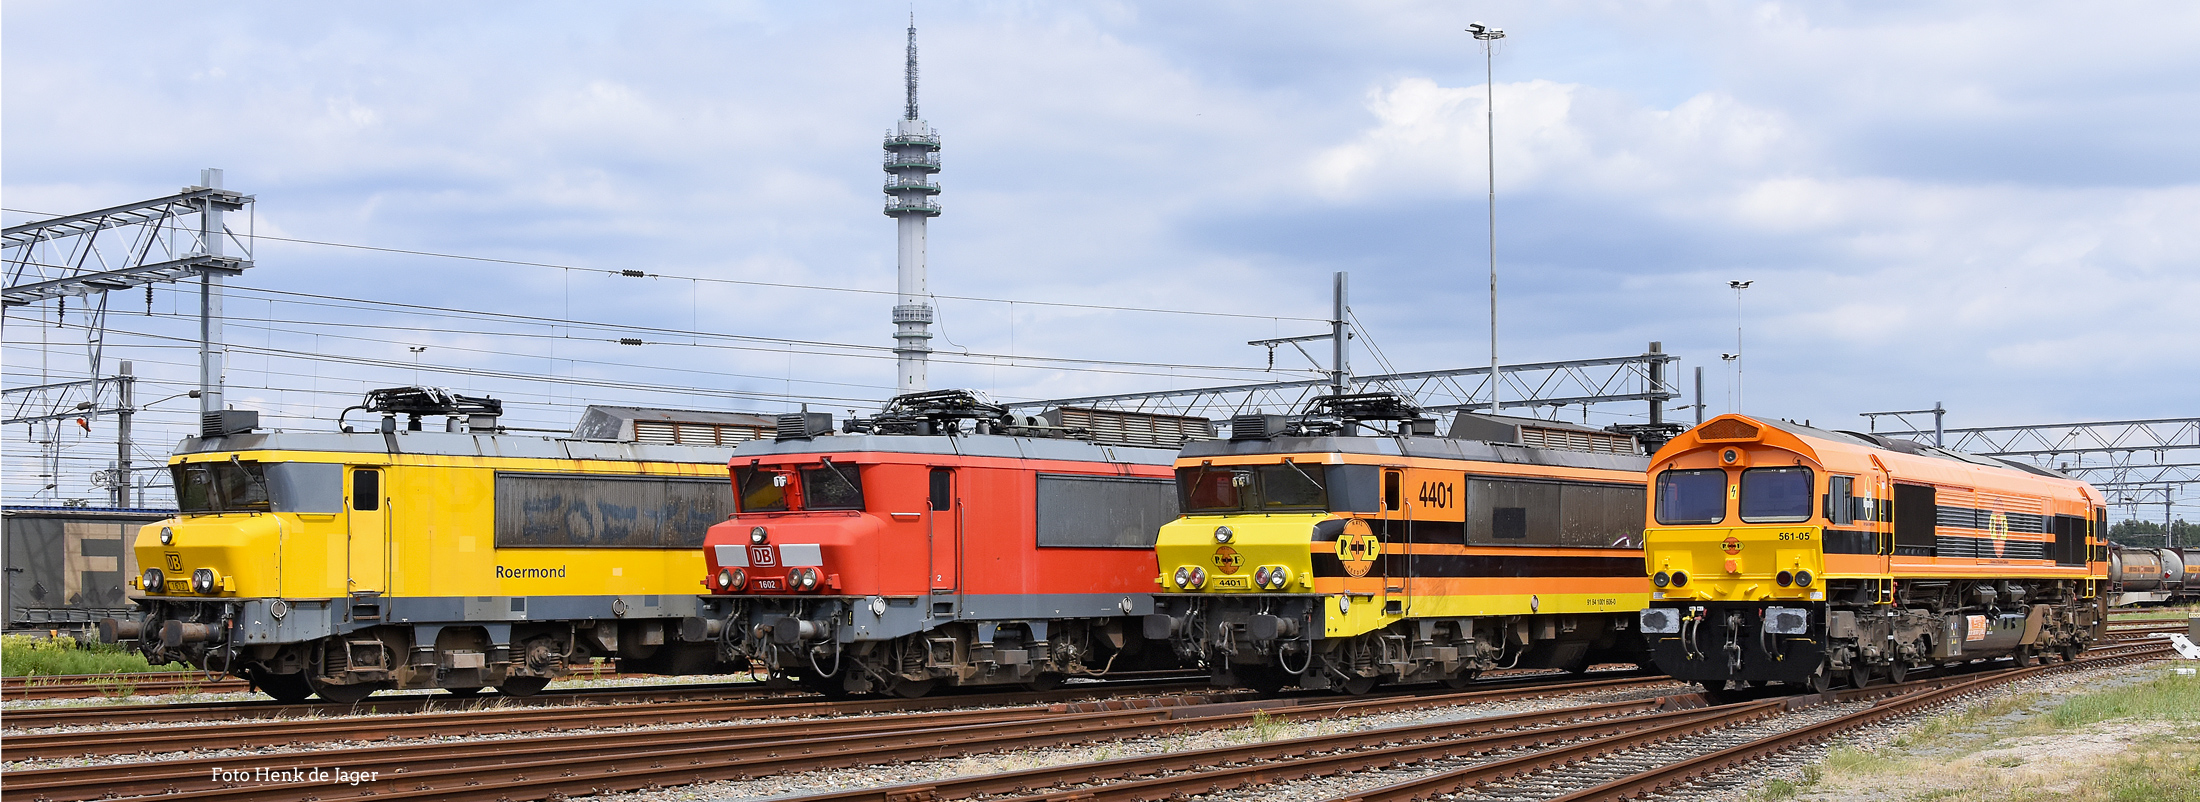 NS-serie 1600 Line-up